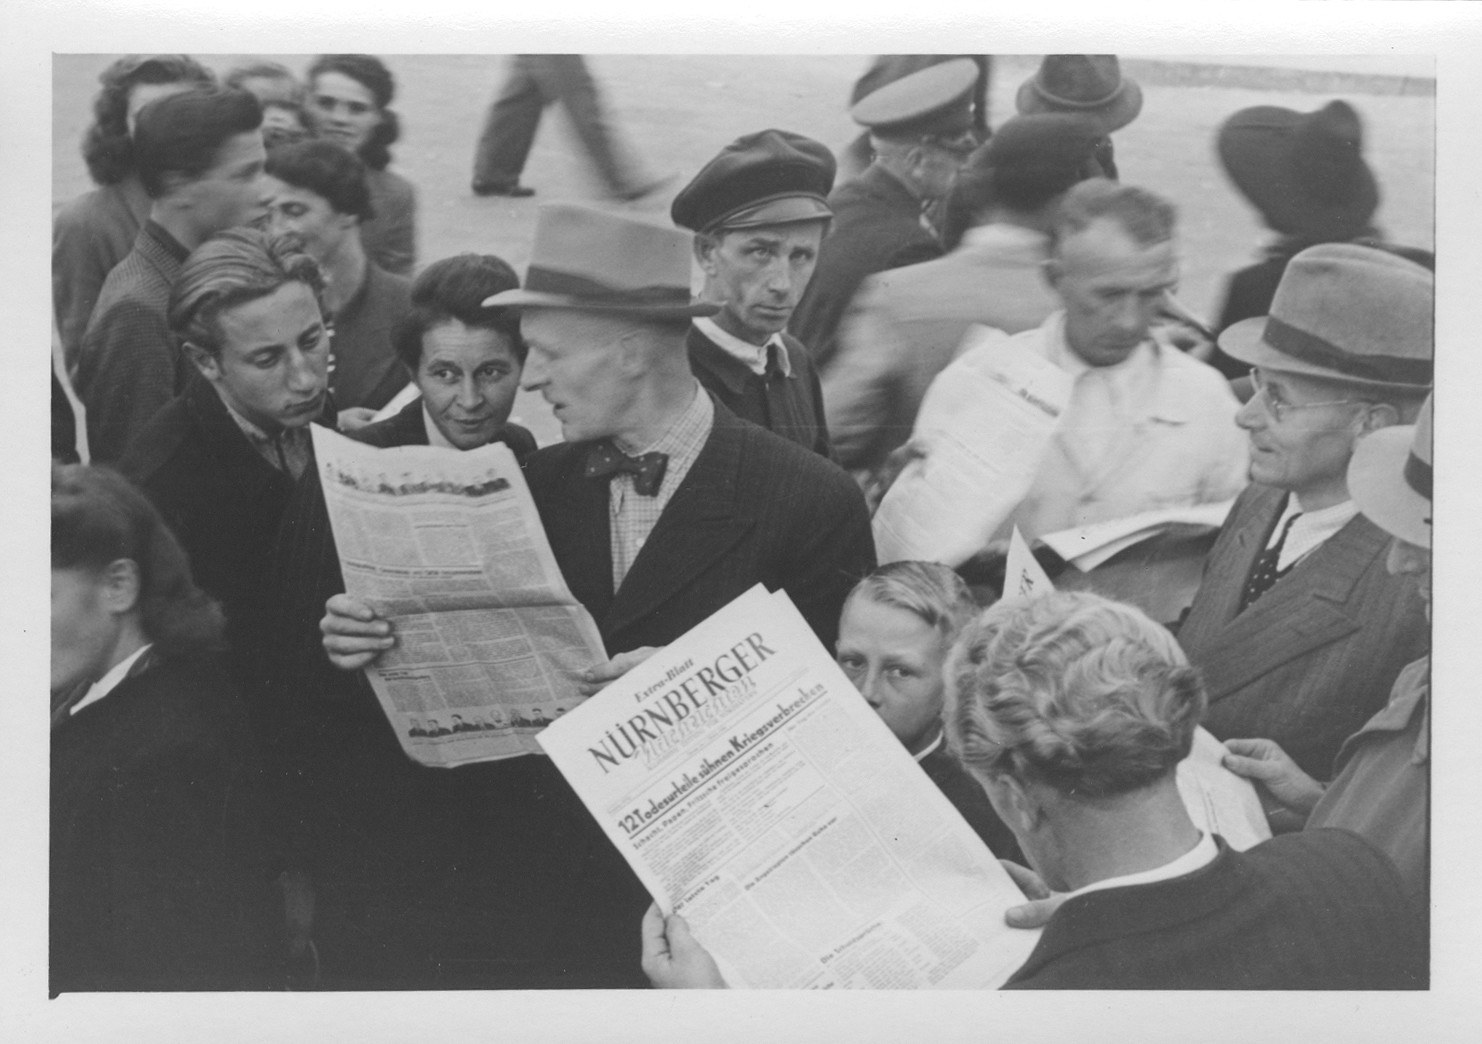 A crowd eagerly reads the special edition of the Nurnberger newspaper reporting on the sentences meted out by the International Military Tribunal.